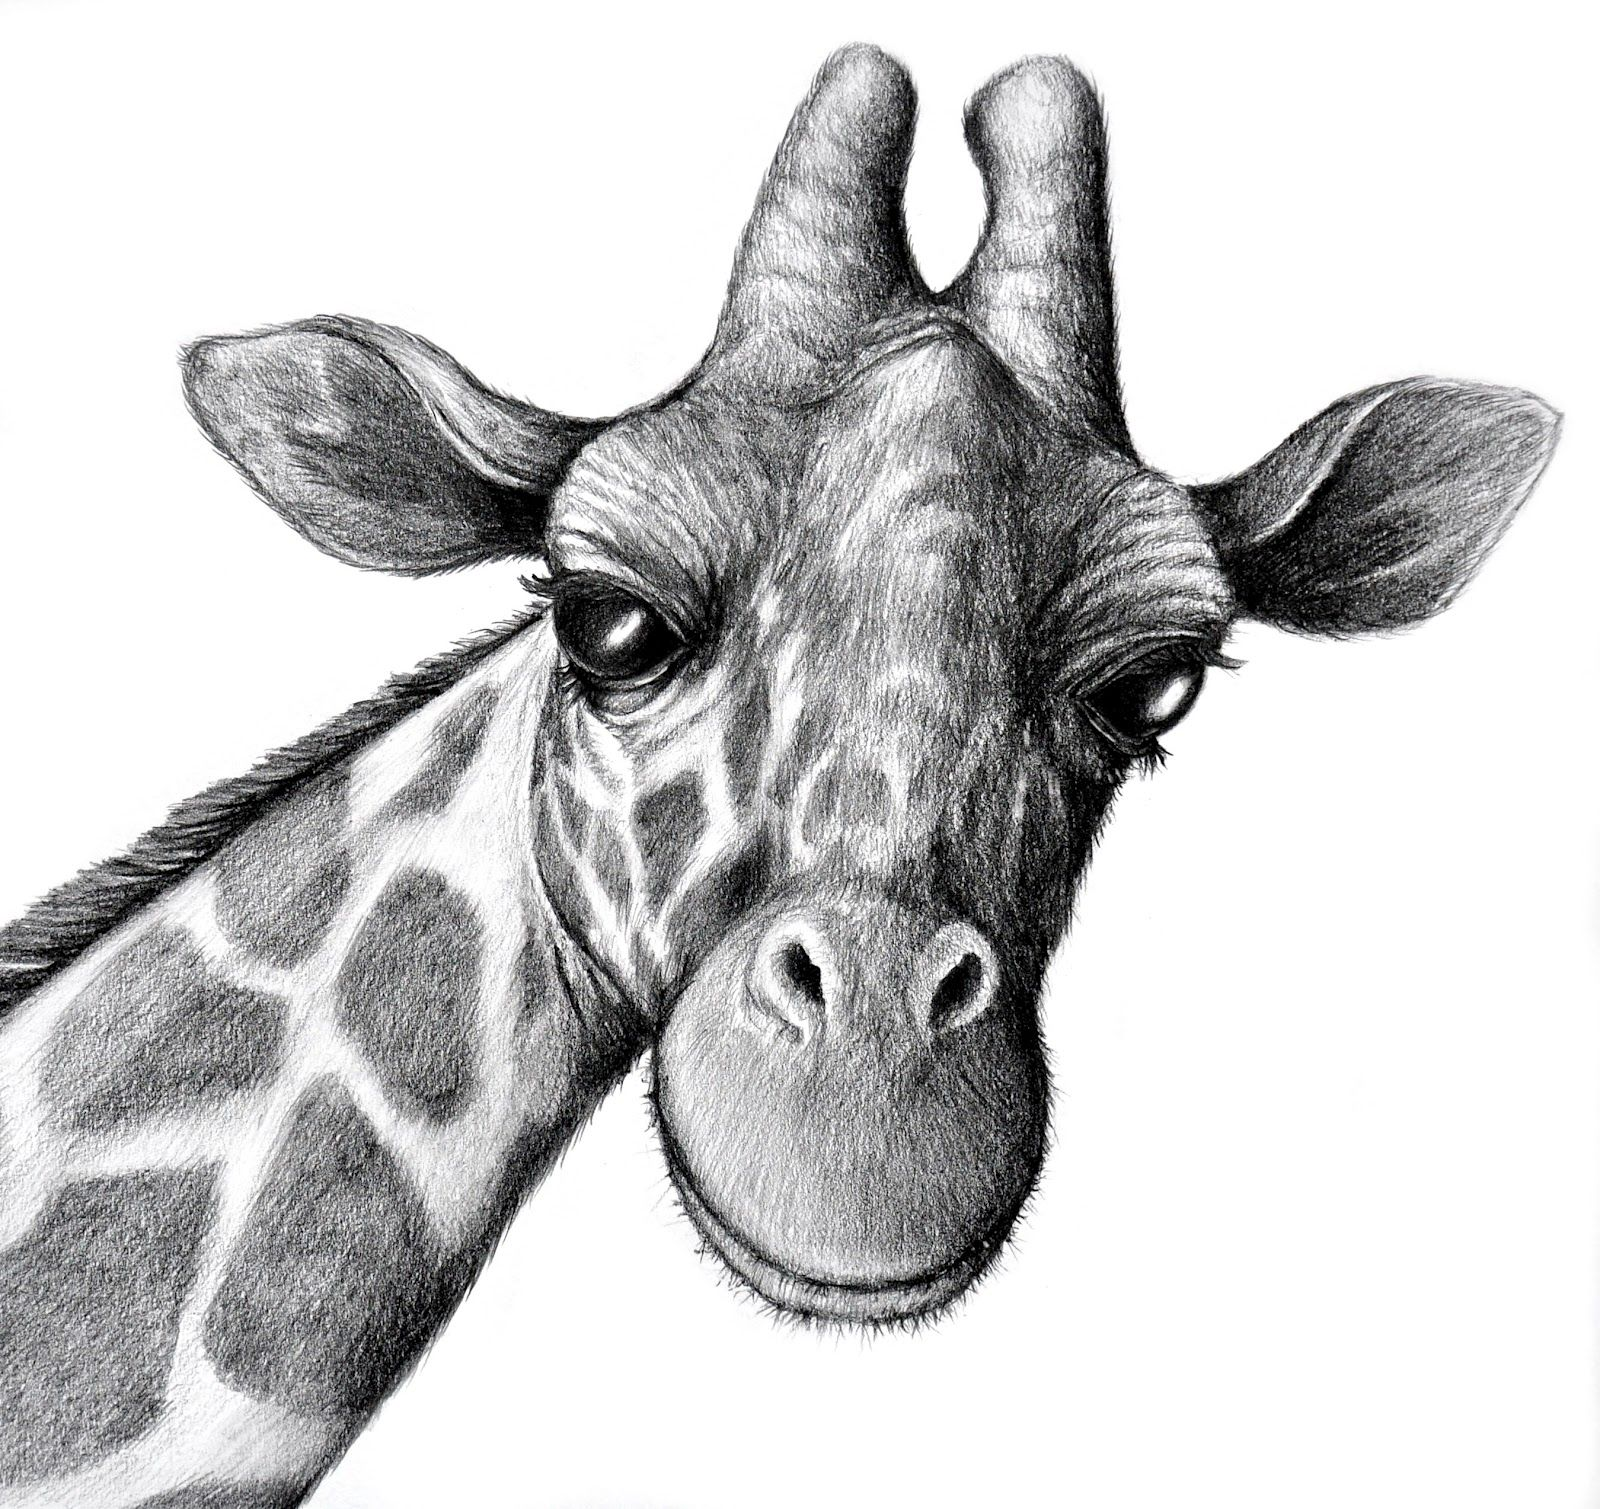 pencil drawings of animals - HD 1024×965